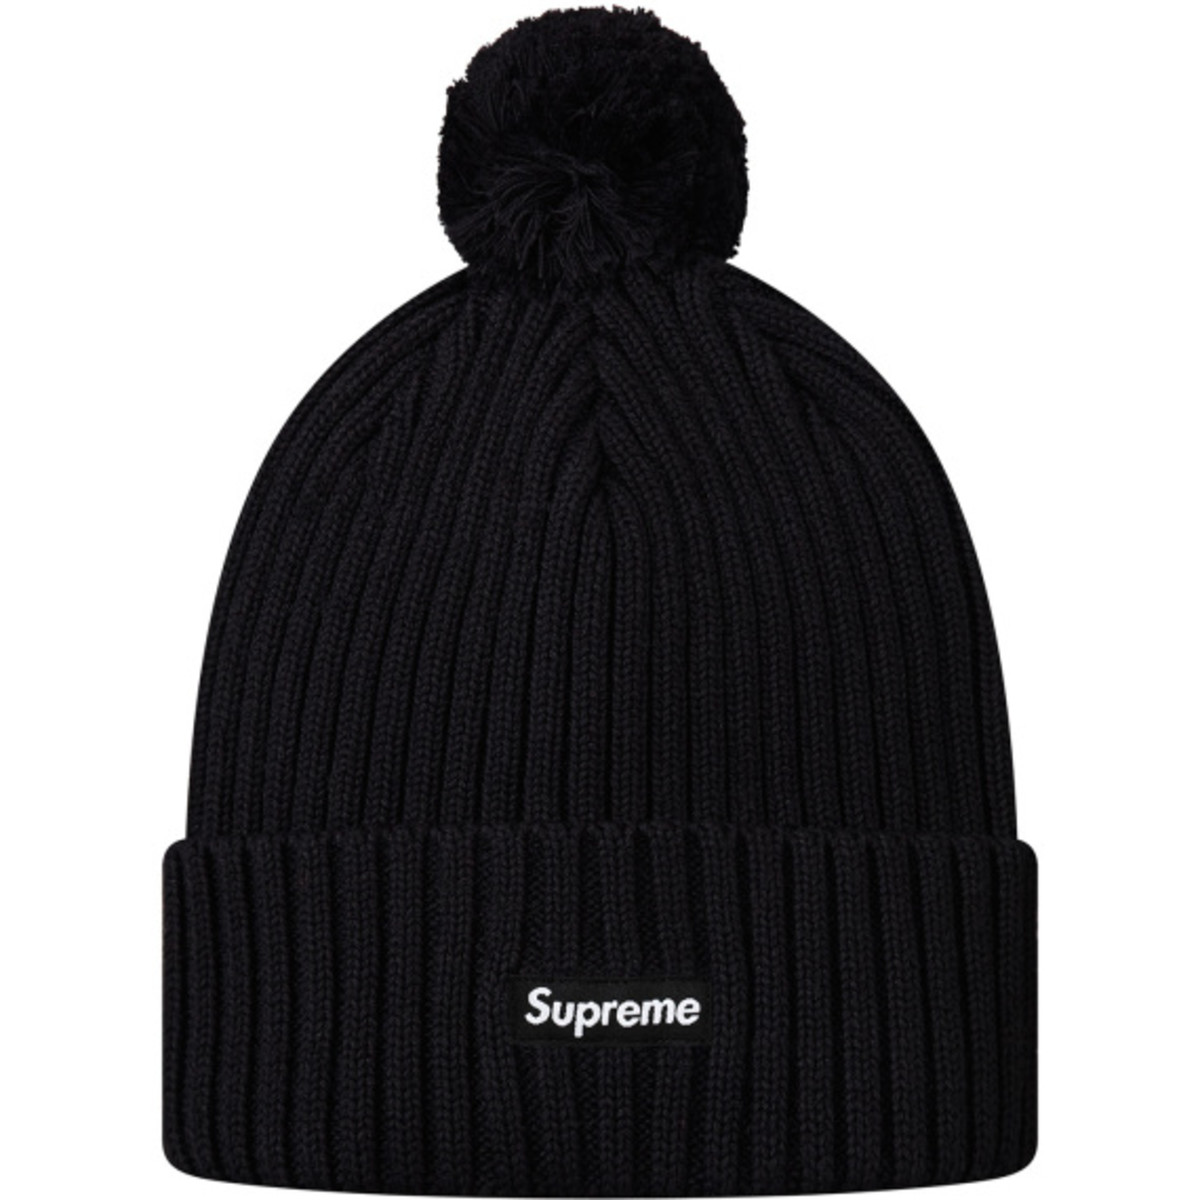 Supreme Ribbed Beanie | Available Now - 3